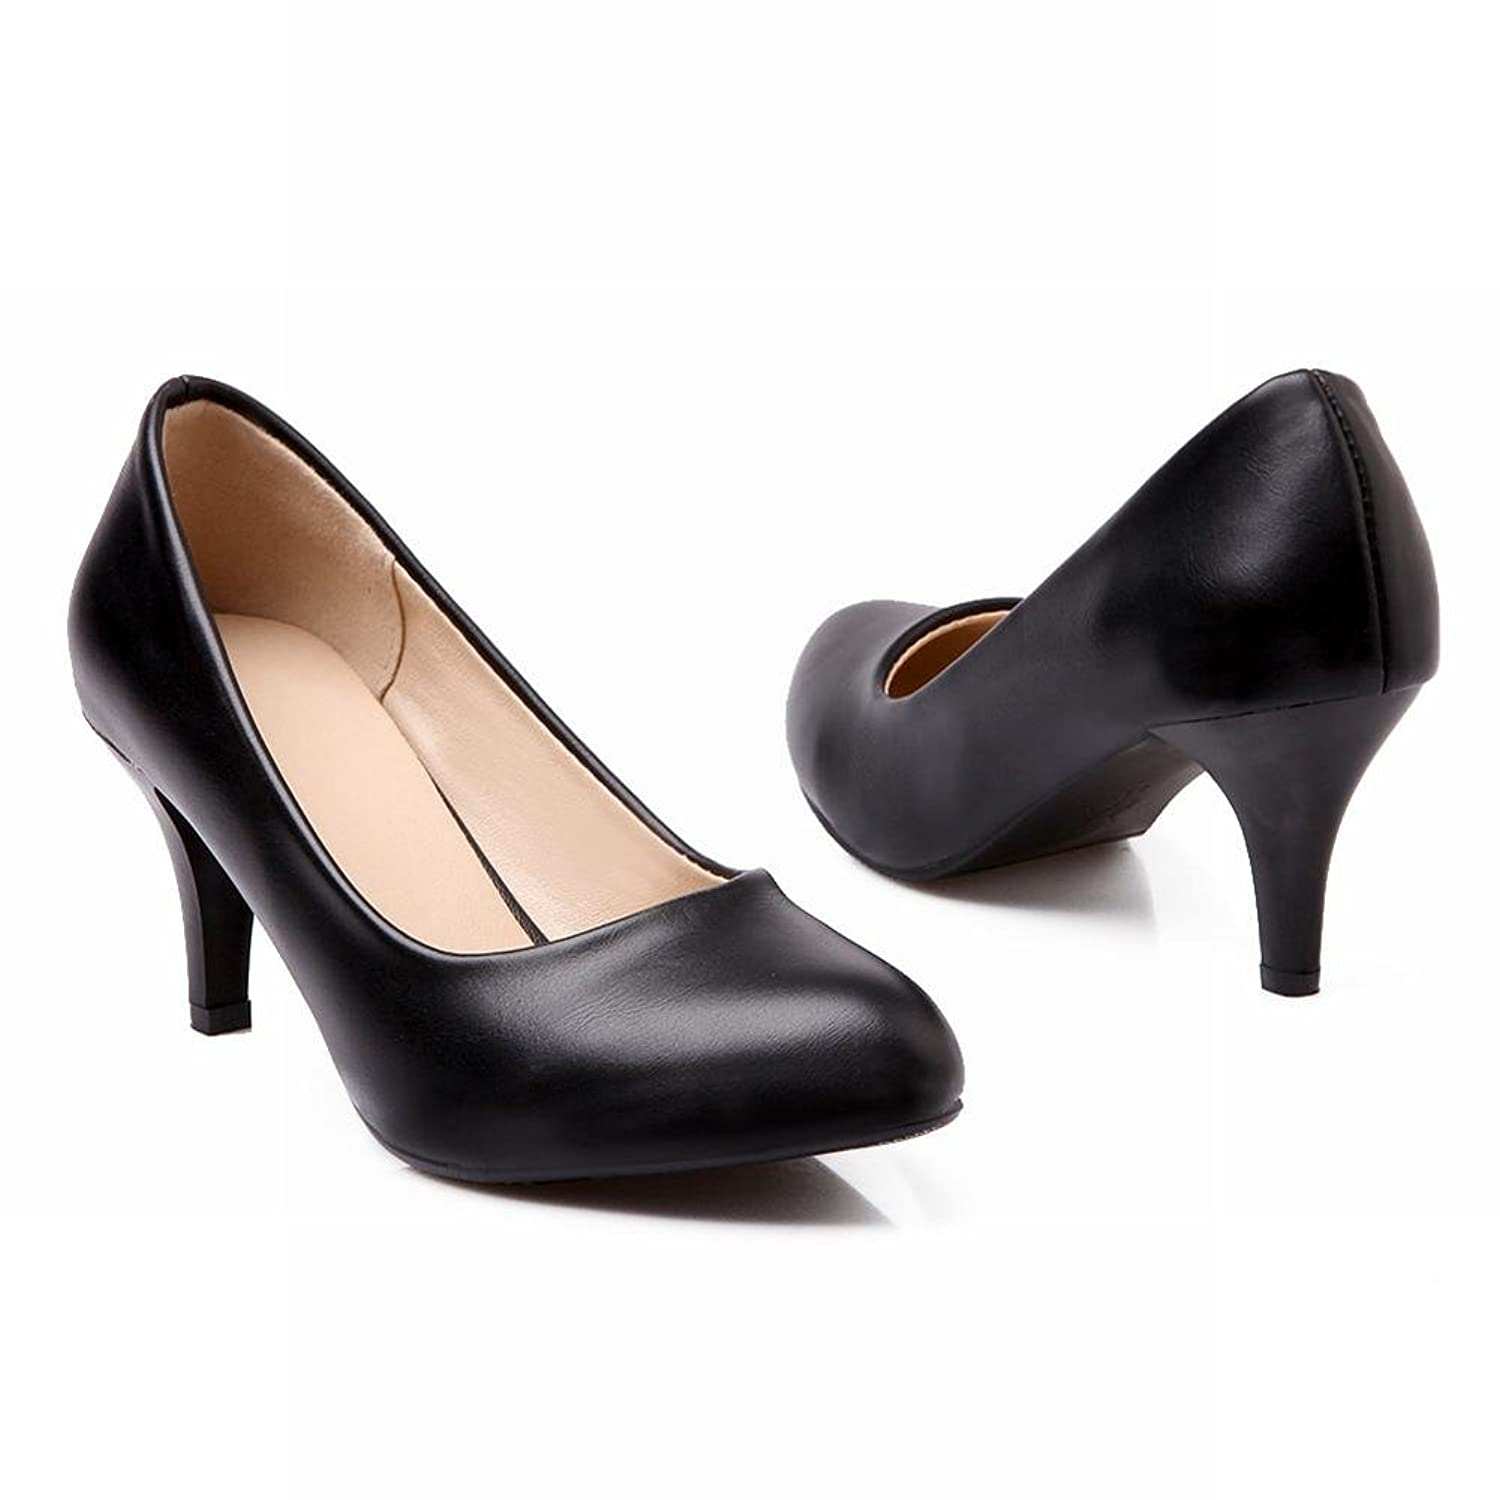 Carol Shoes Women's Western Concise High Heel Stiletto Court Shoes:  Amazon.co.uk: Shoes & Bags